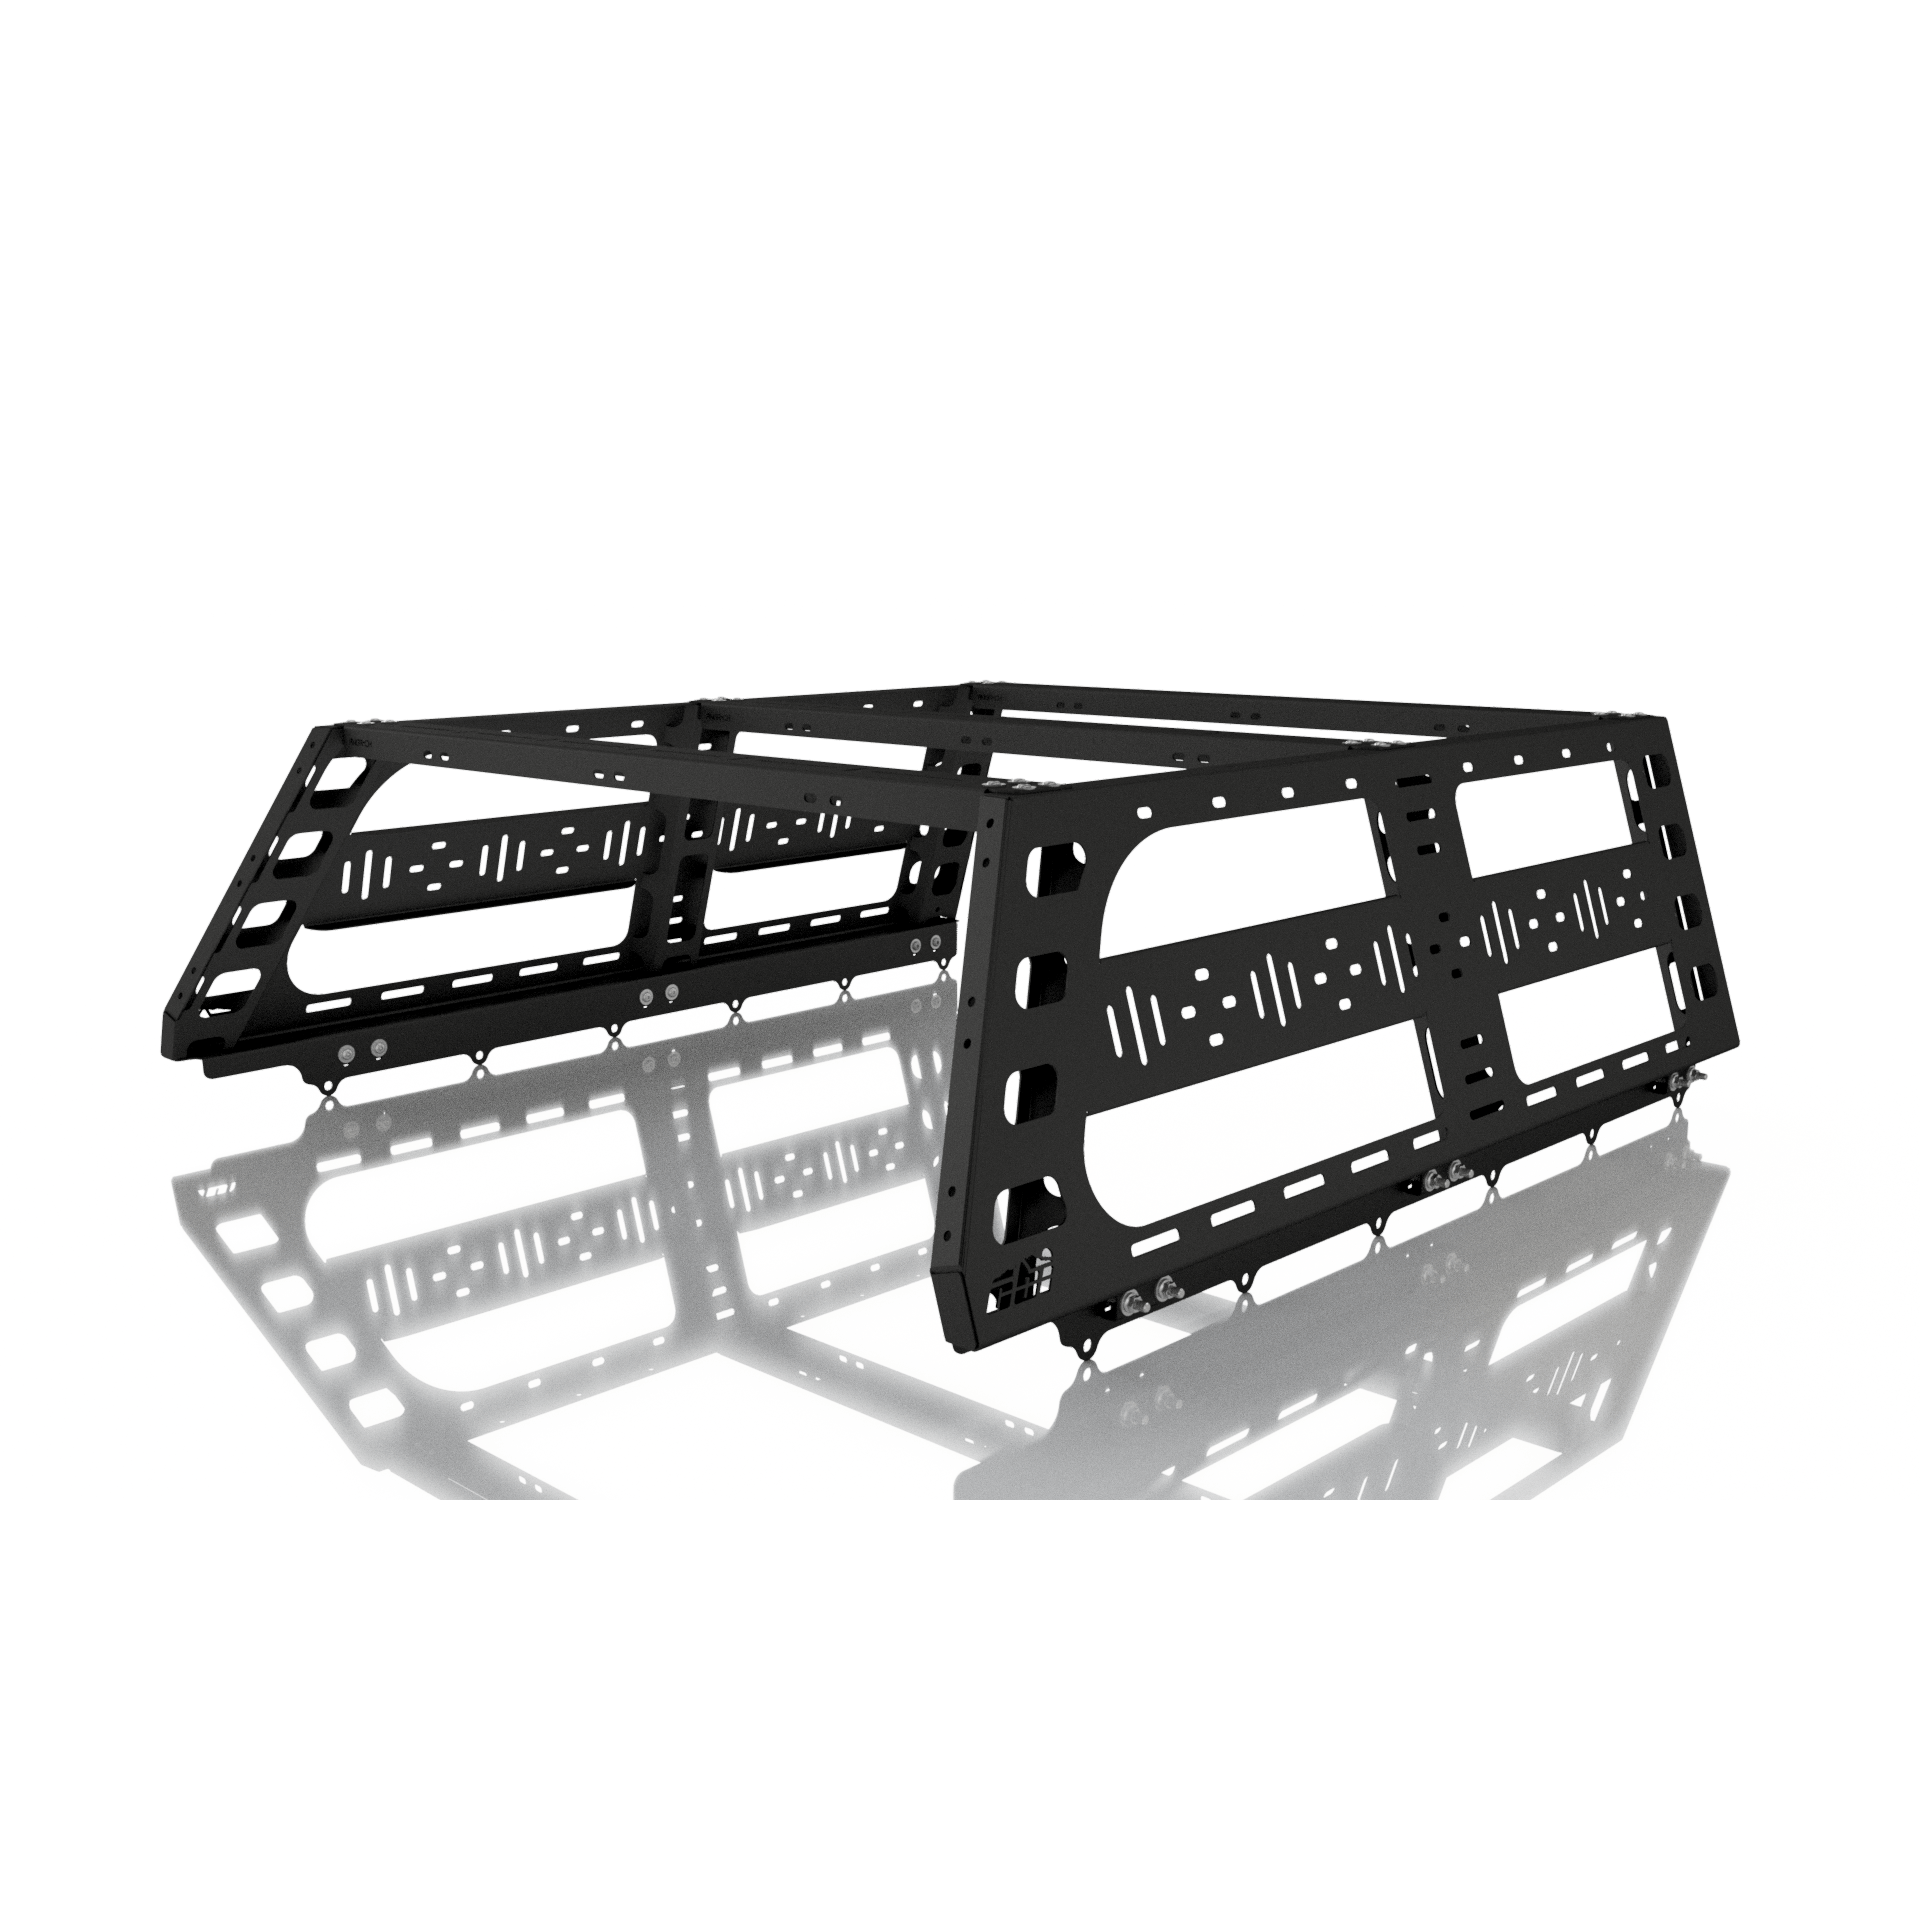 ford ranger cab height bed rack 2019 2021